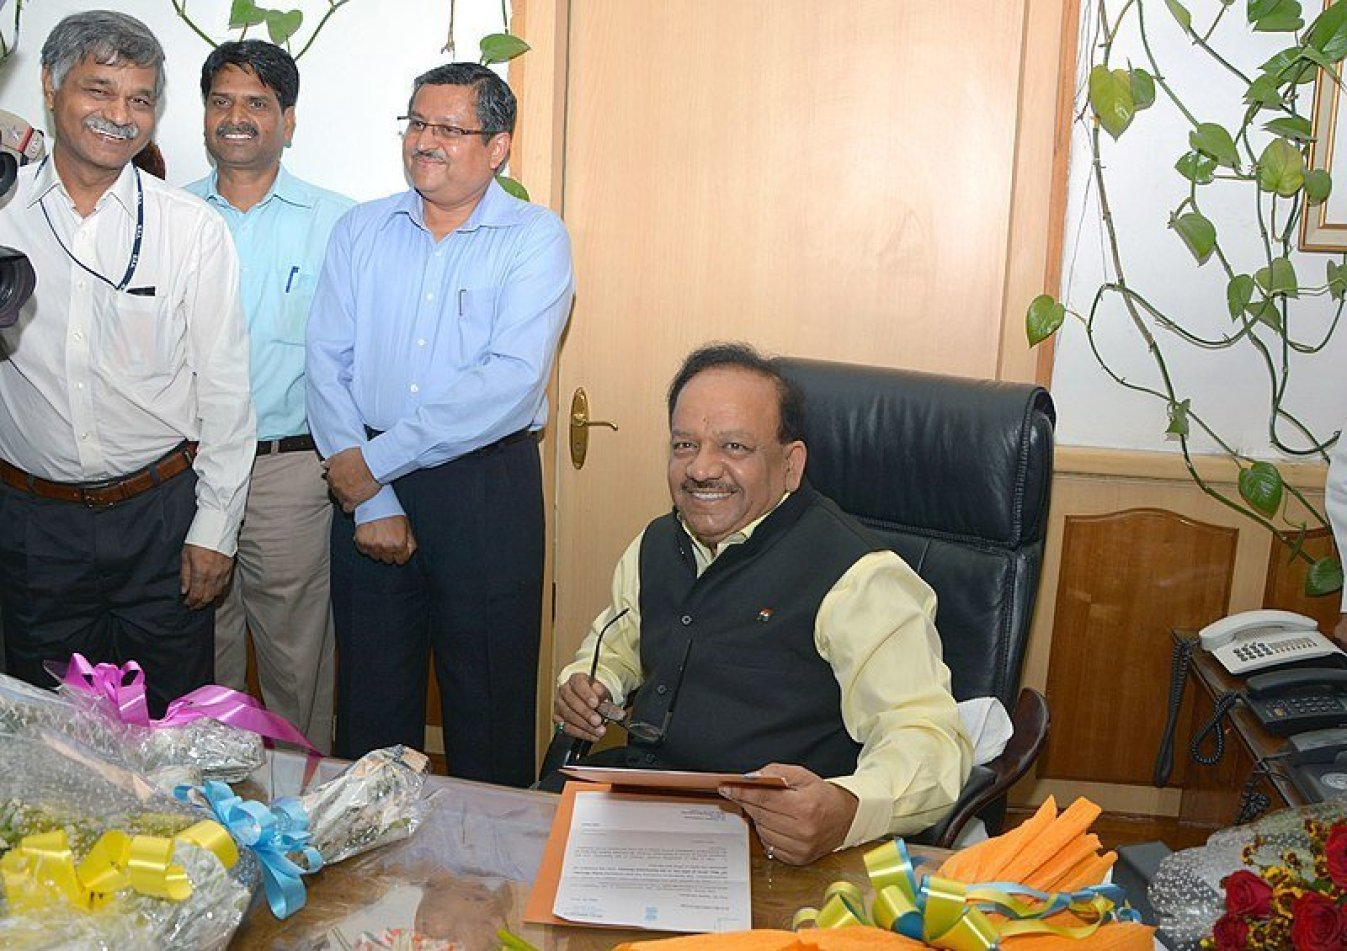 "<em><strong>Union Health Minister Dr Vardhan, who has told Lok Sabha MPs that more than ten crore families are covered under Ayushman Bharat. Image credit: Ministry of Health and Family Welfare (GODL-India) [GODL-India (https://data.gov.in/sites/default/files/Gazette_Notification_OGDL.pdf)] This file or its source was published by Press Information Bureau on behalf of Ministry of Health and Family Welfare, Government of India under the ID <a class=""external text ext-link"" href=""http://pib.nic.in/newsite/photo.aspx?photoid=54064"" rel=""nofollow external nofollow"">54064</a> and CNR 56840. <small>(<a class=""external text ext-image"" href=""http://pibphoto.nic.in/photo//2014/May/l2014052754064.jpg"" rel=""nofollow external nofollow"">direct link</a>)</small></strong></em>"